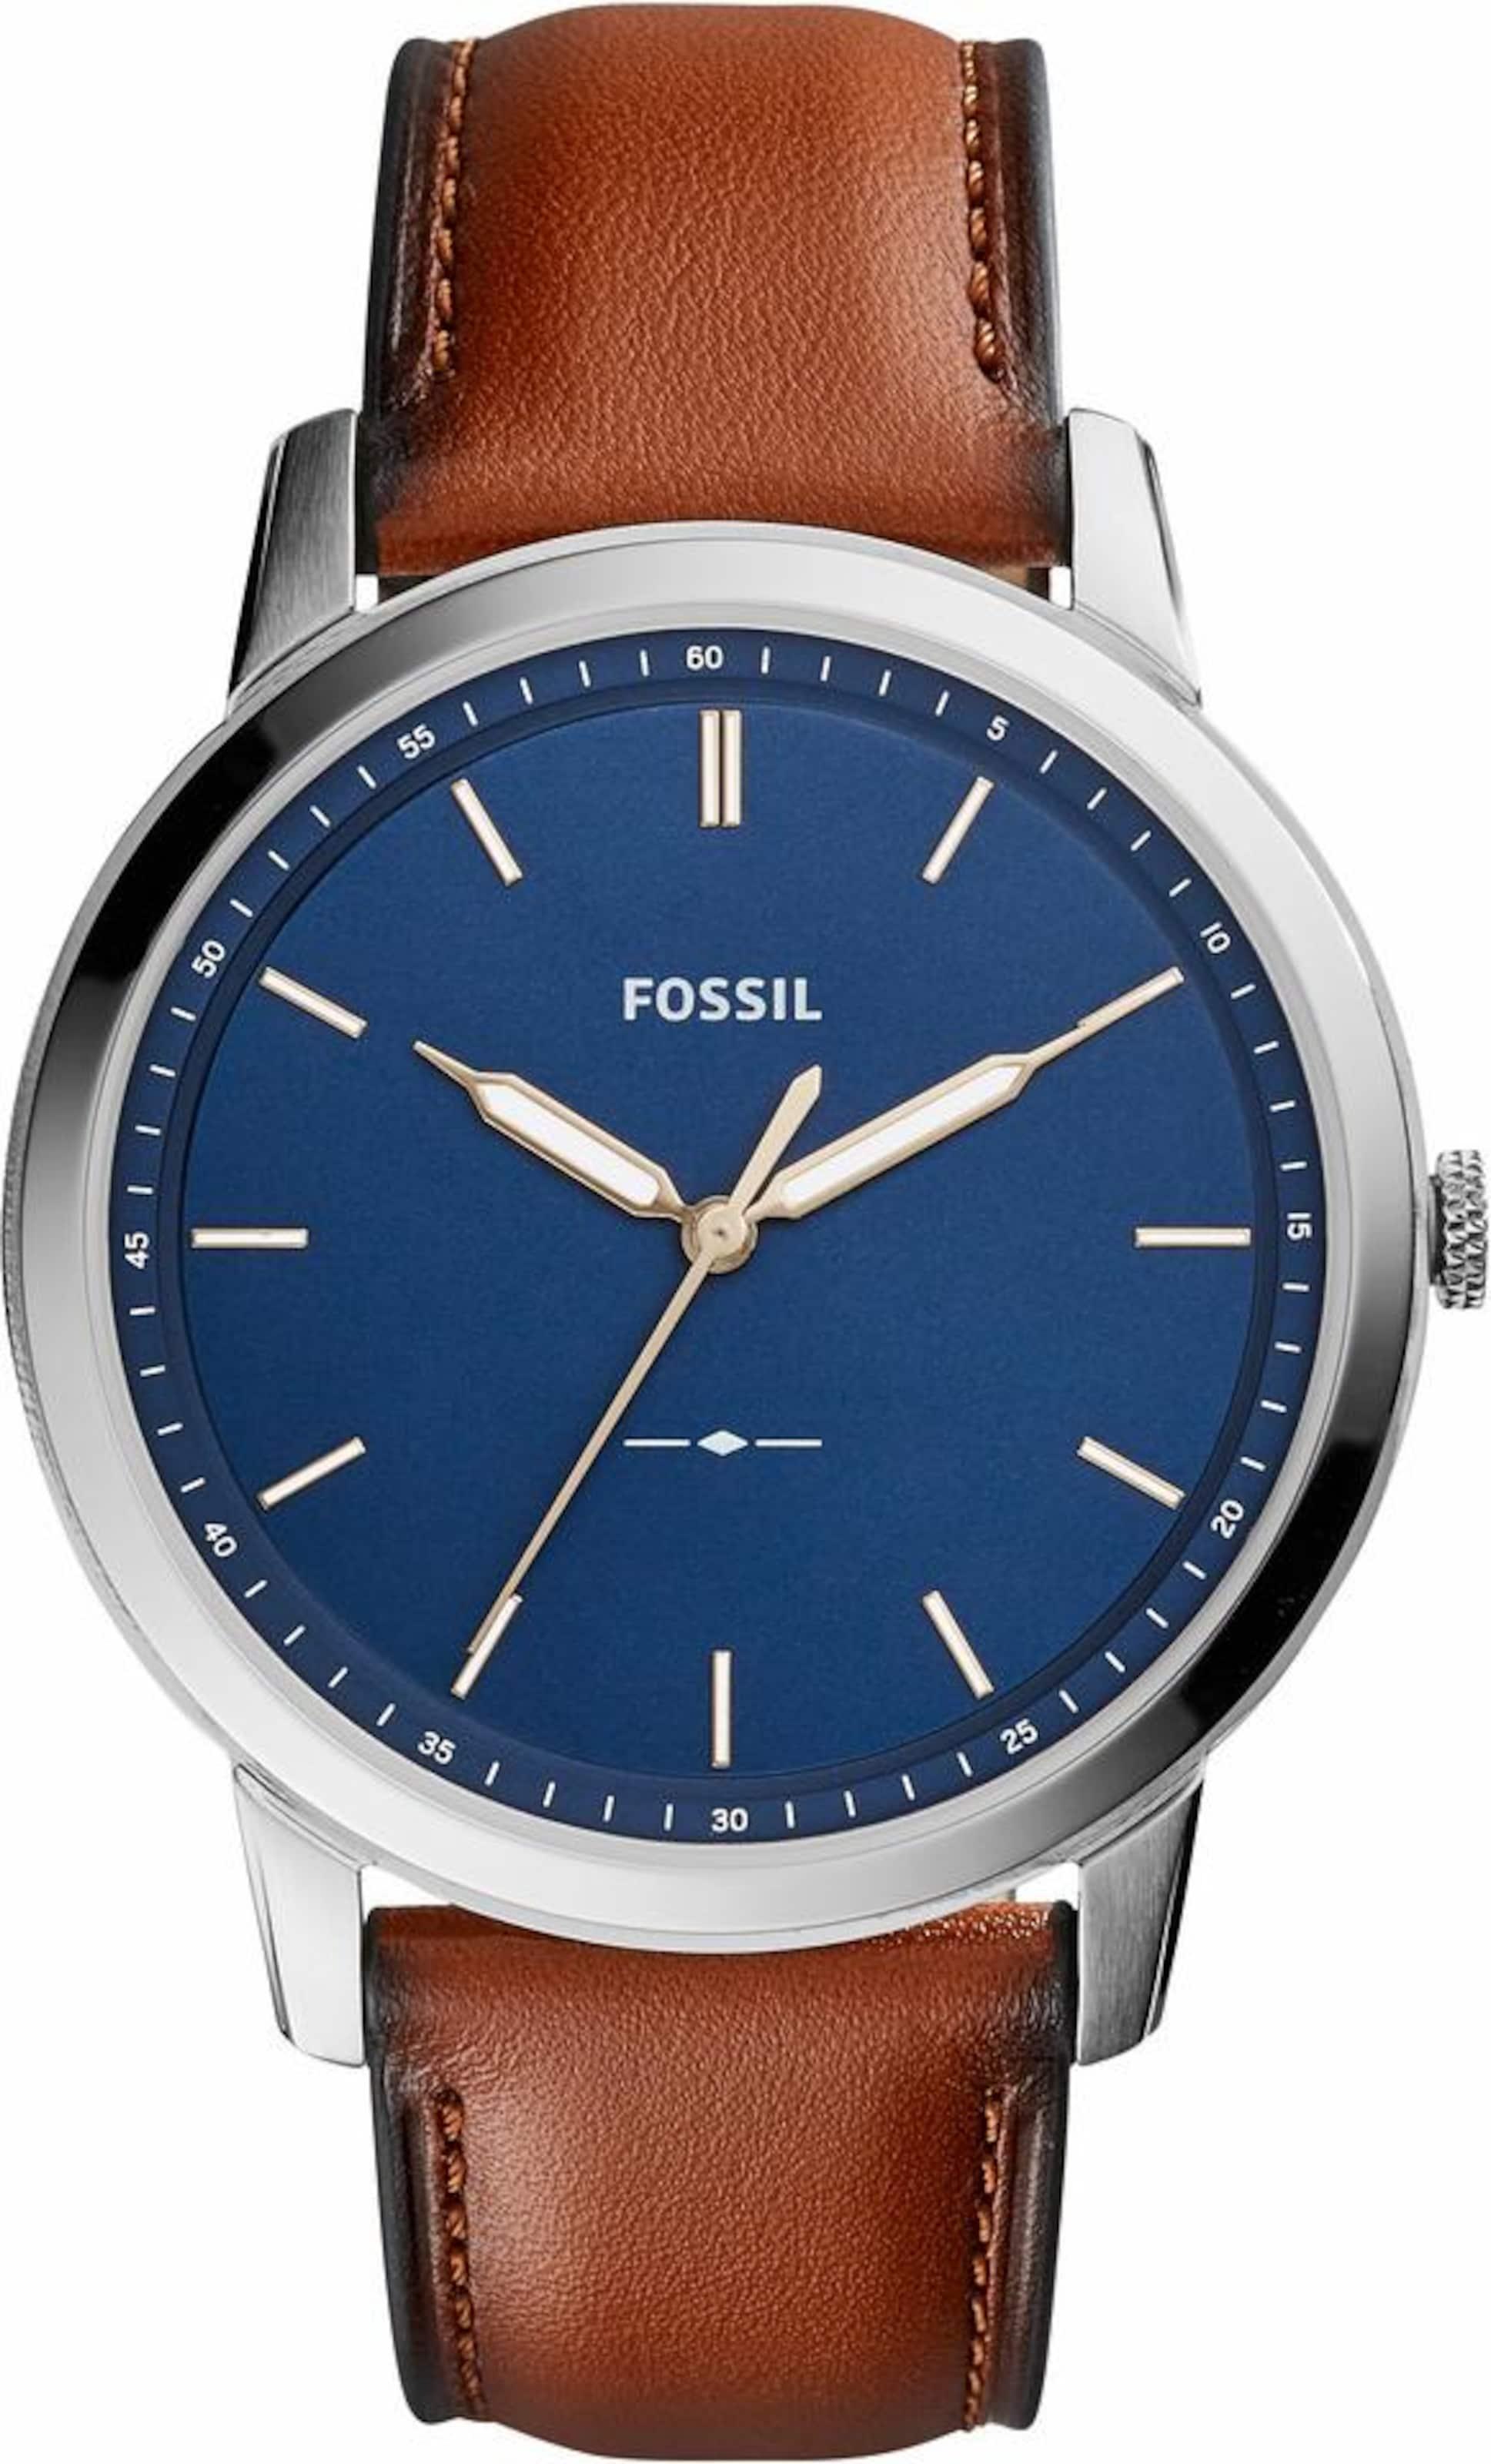 FOSSIL Quarzuhr 'THE MINIMALIST 3H, FS5304'